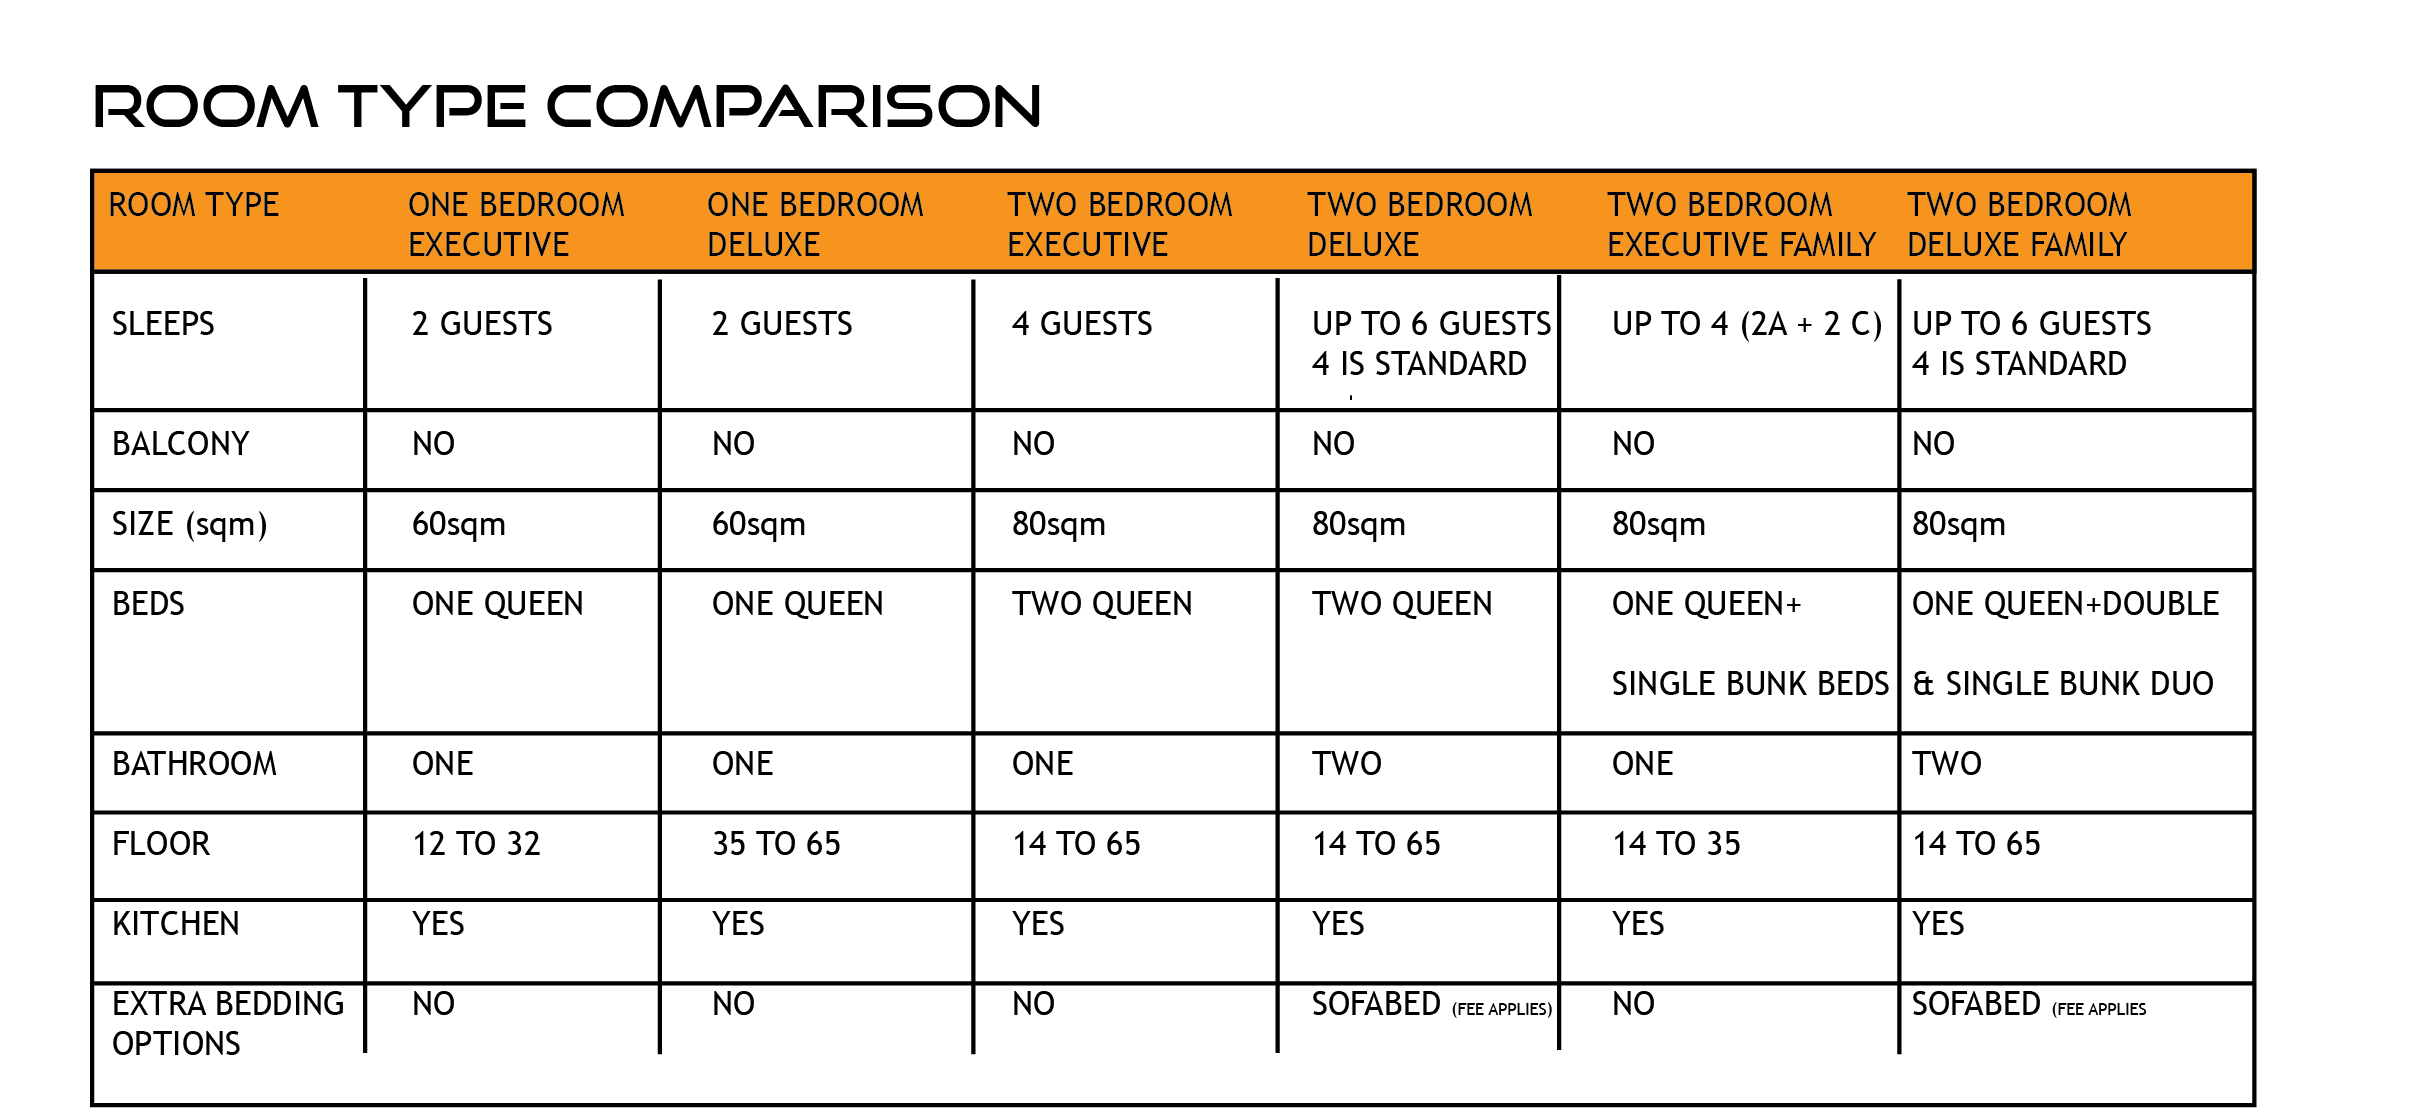 ROOM COMPARISON TABLE COLLINS STREET-01.png